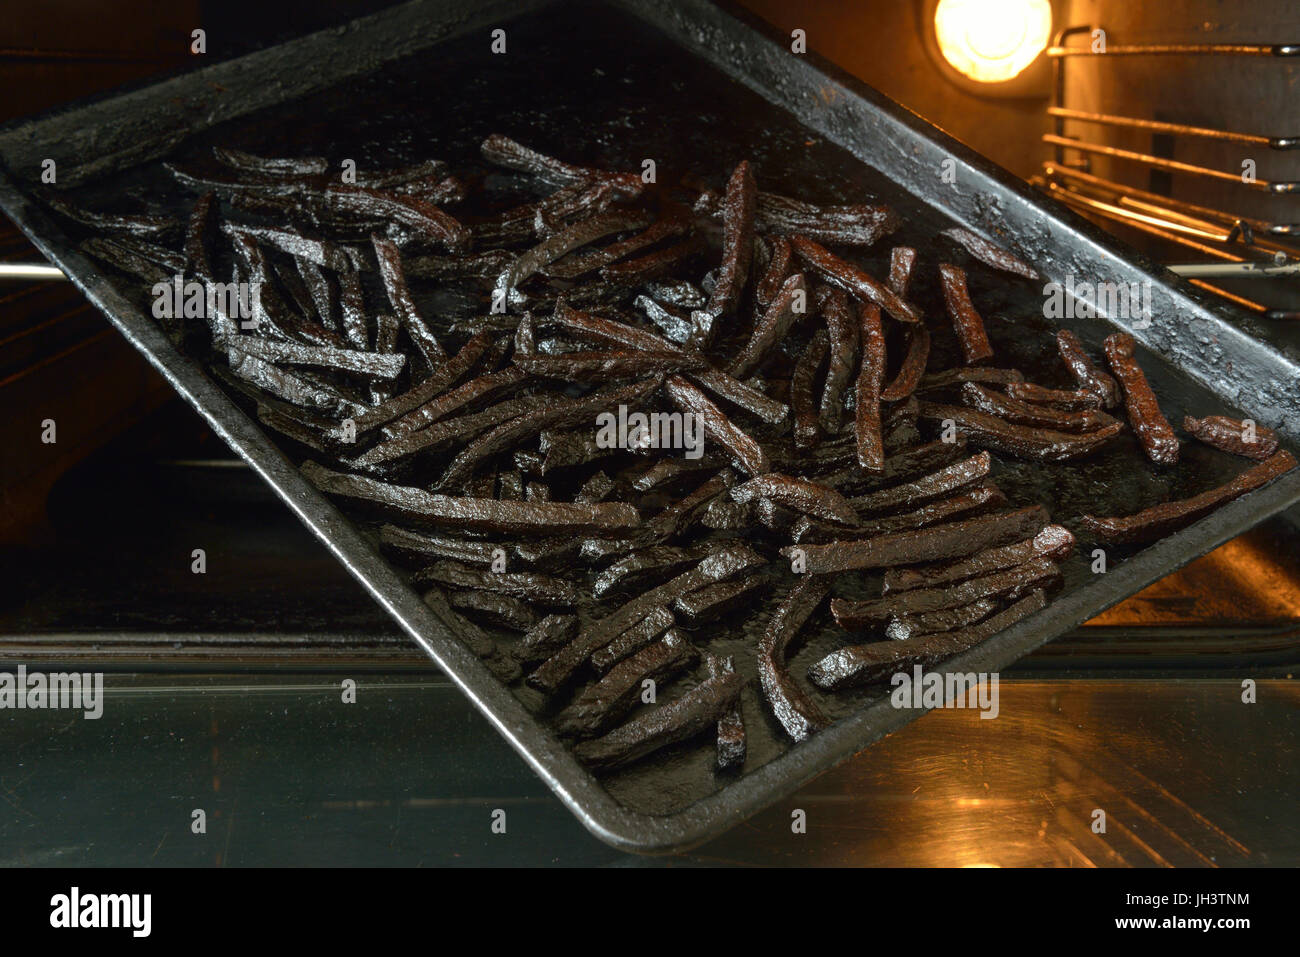 Burnt oven cooked french fries - Stock Image